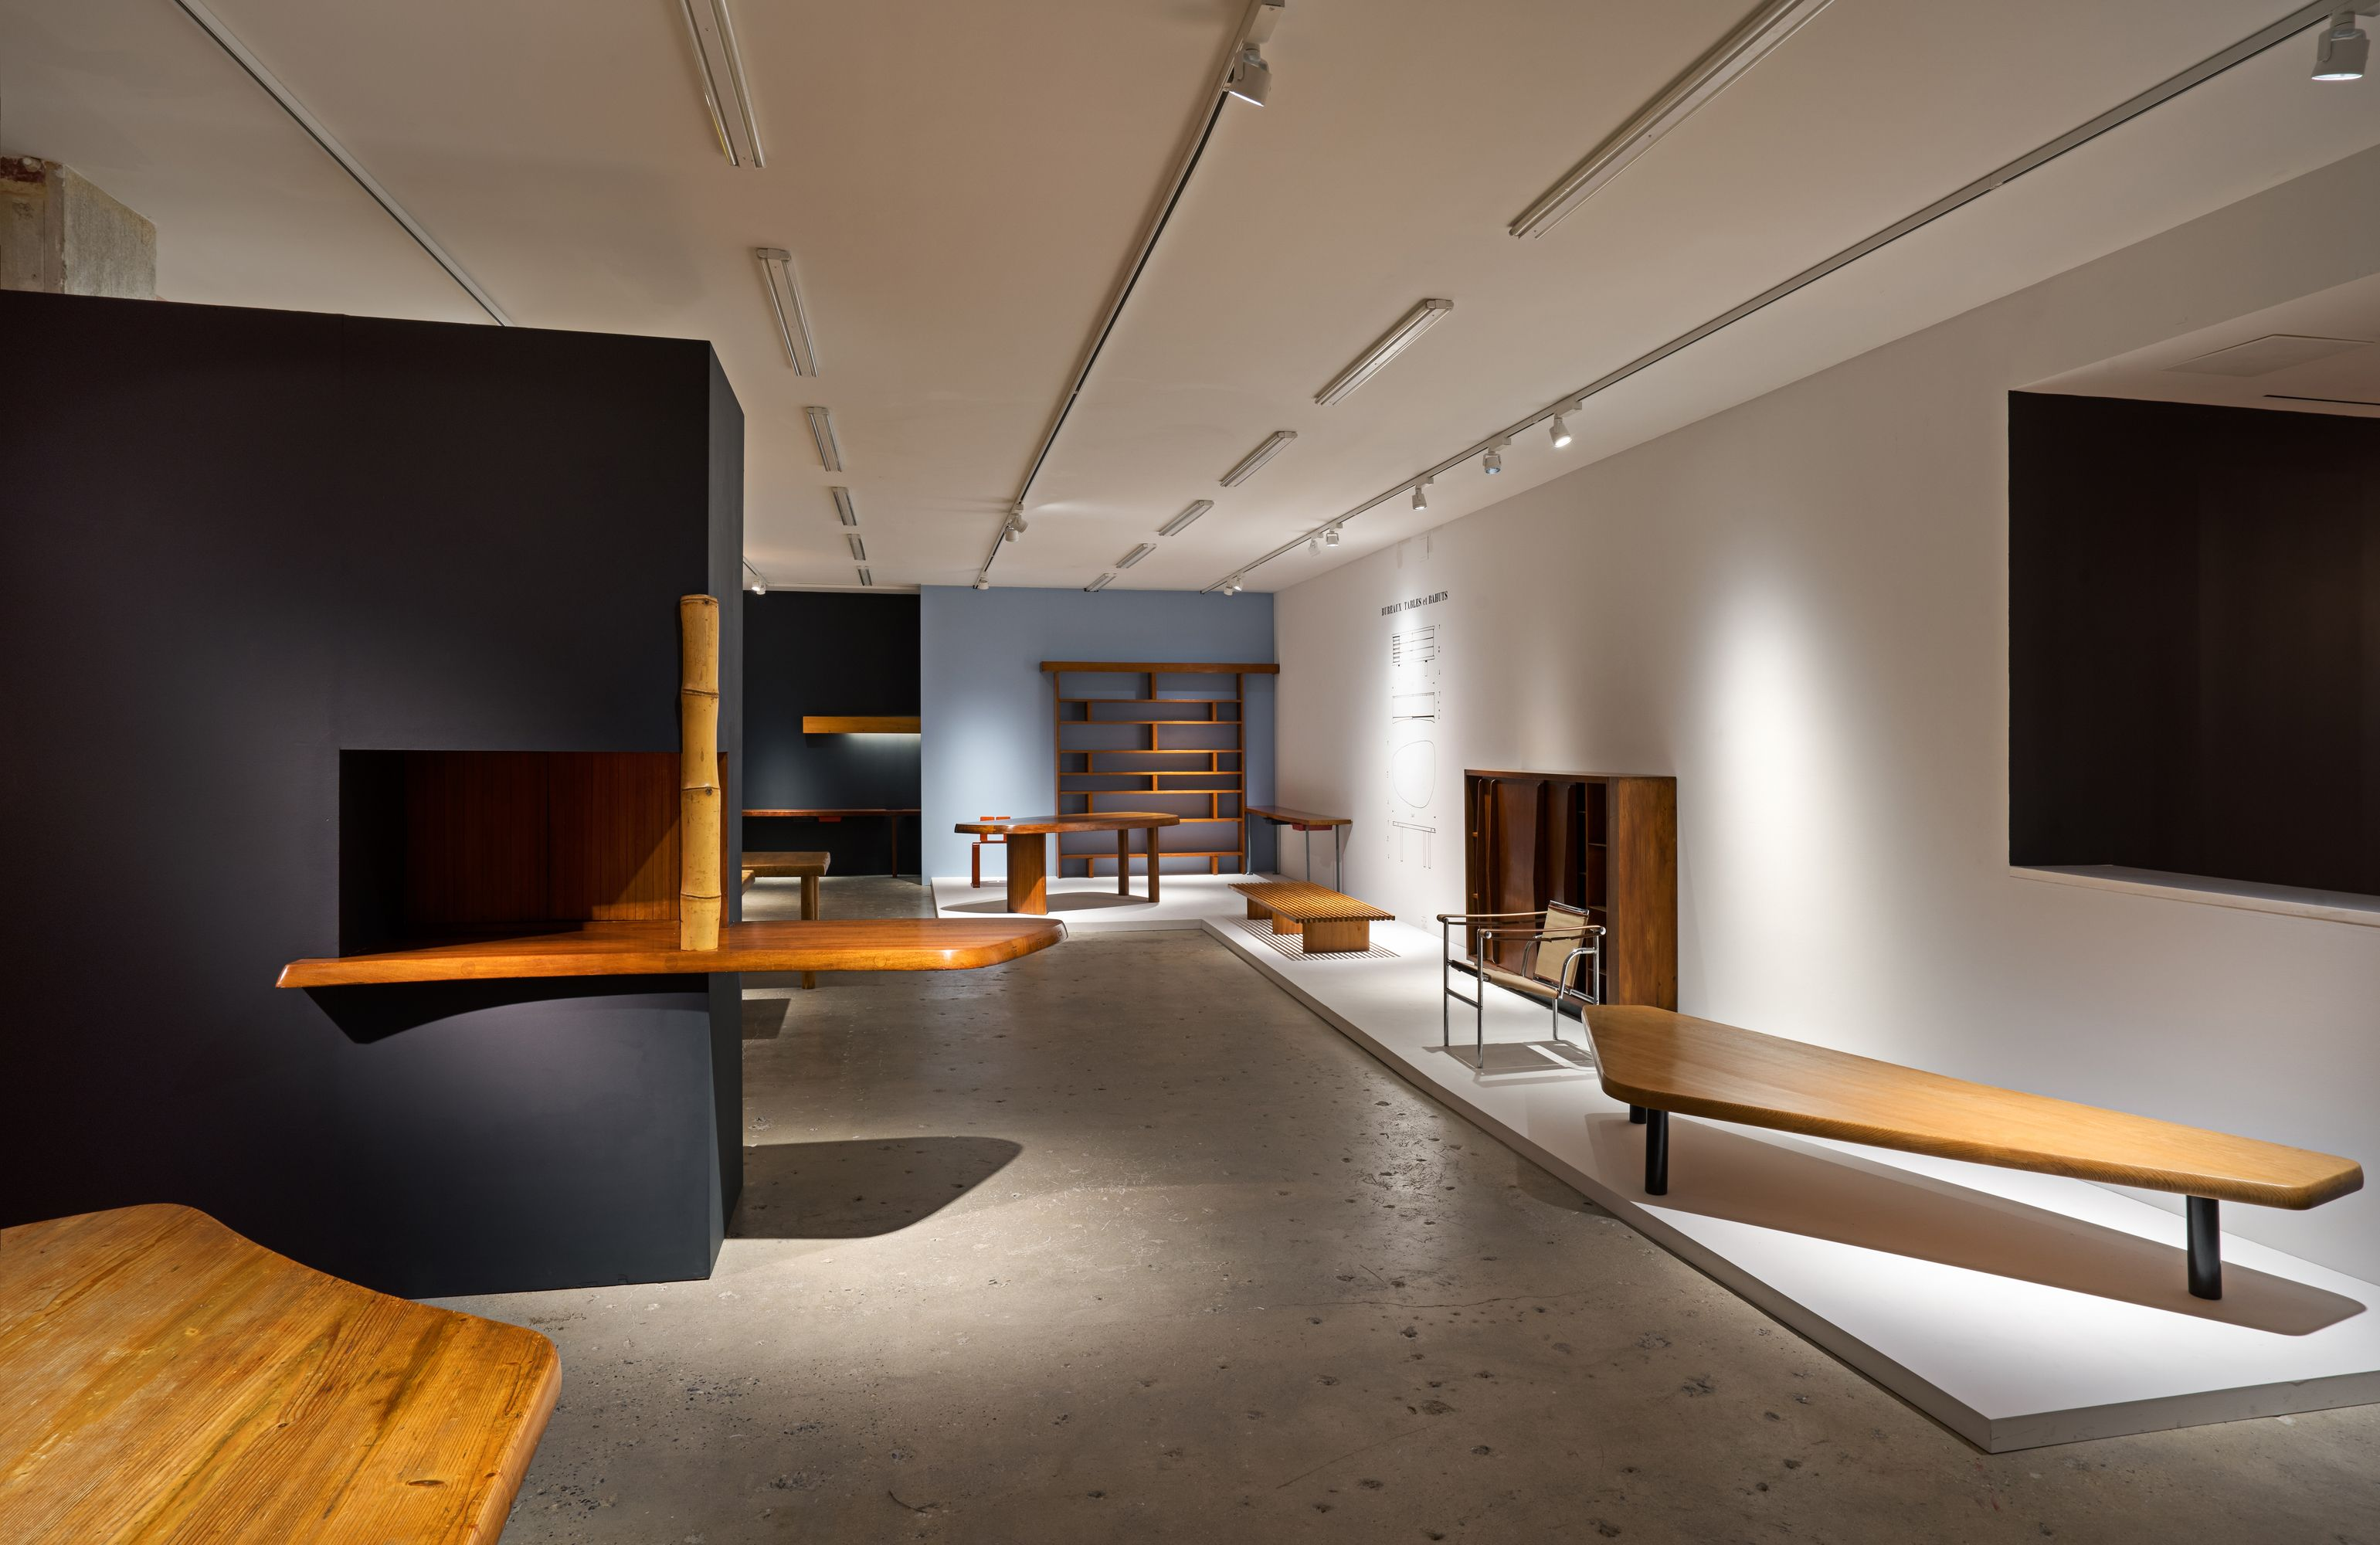 Table À Manger Japonaise selected works - installation views - - charlotte perriand